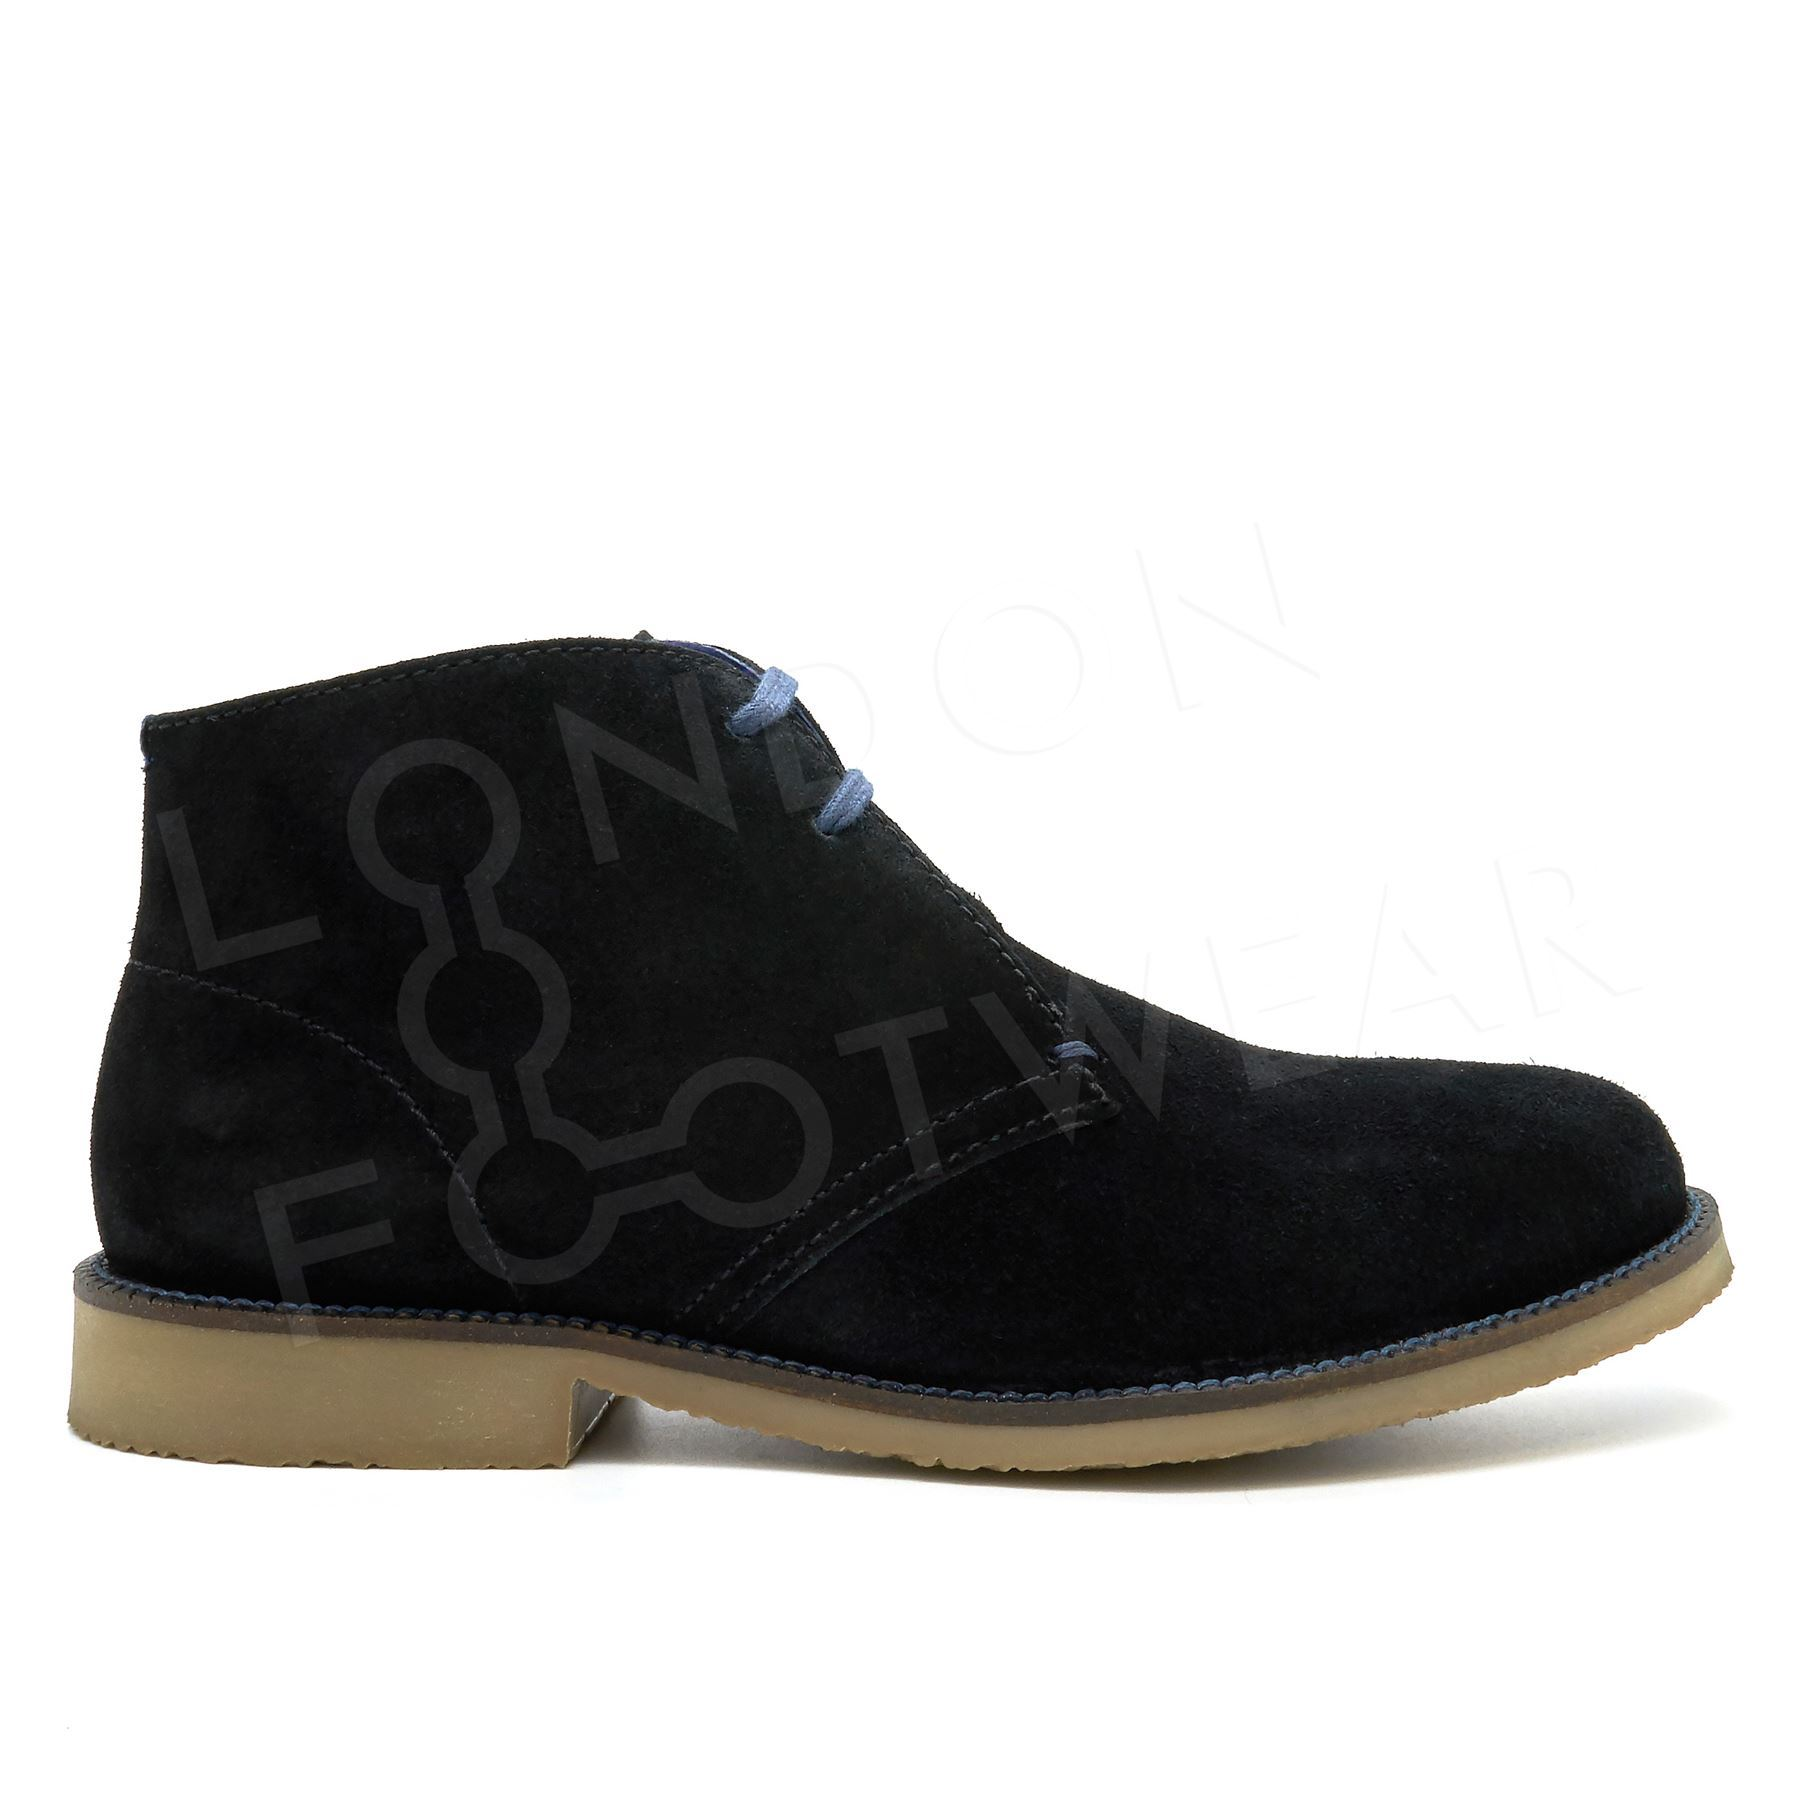 new mens suede leather casual lace up shoes size chukka ankle desert boots 6 11 ebay. Black Bedroom Furniture Sets. Home Design Ideas